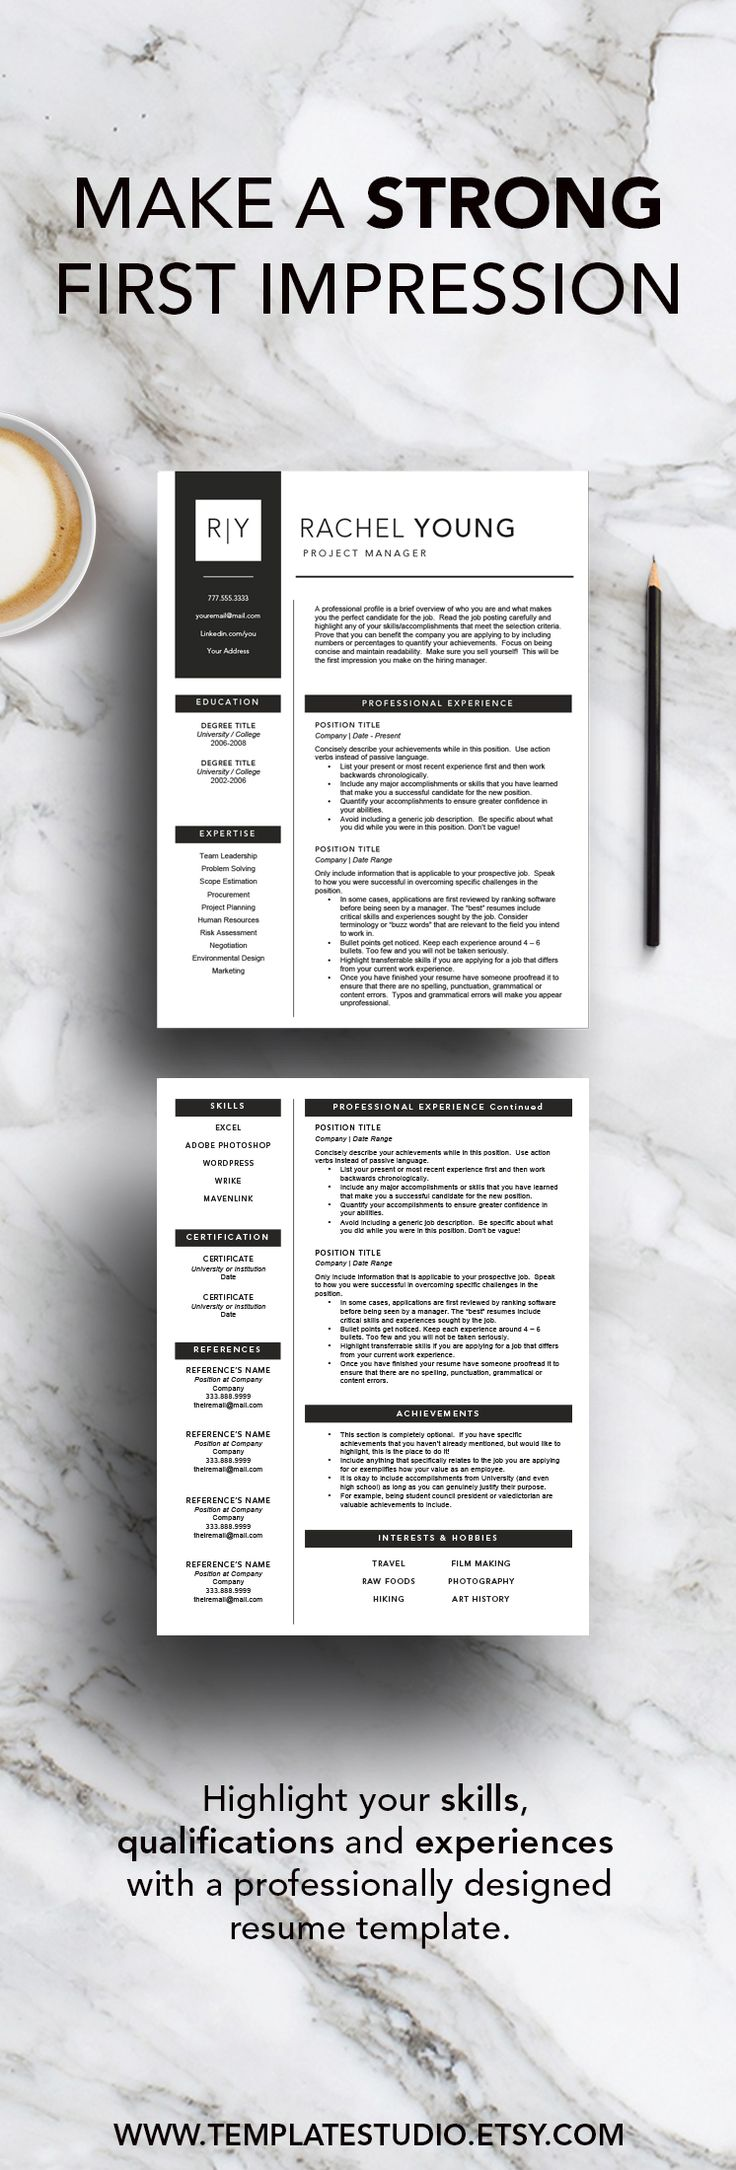 Professional Resume Template | CV Template | Modern Resume Template | Job Searching Tips